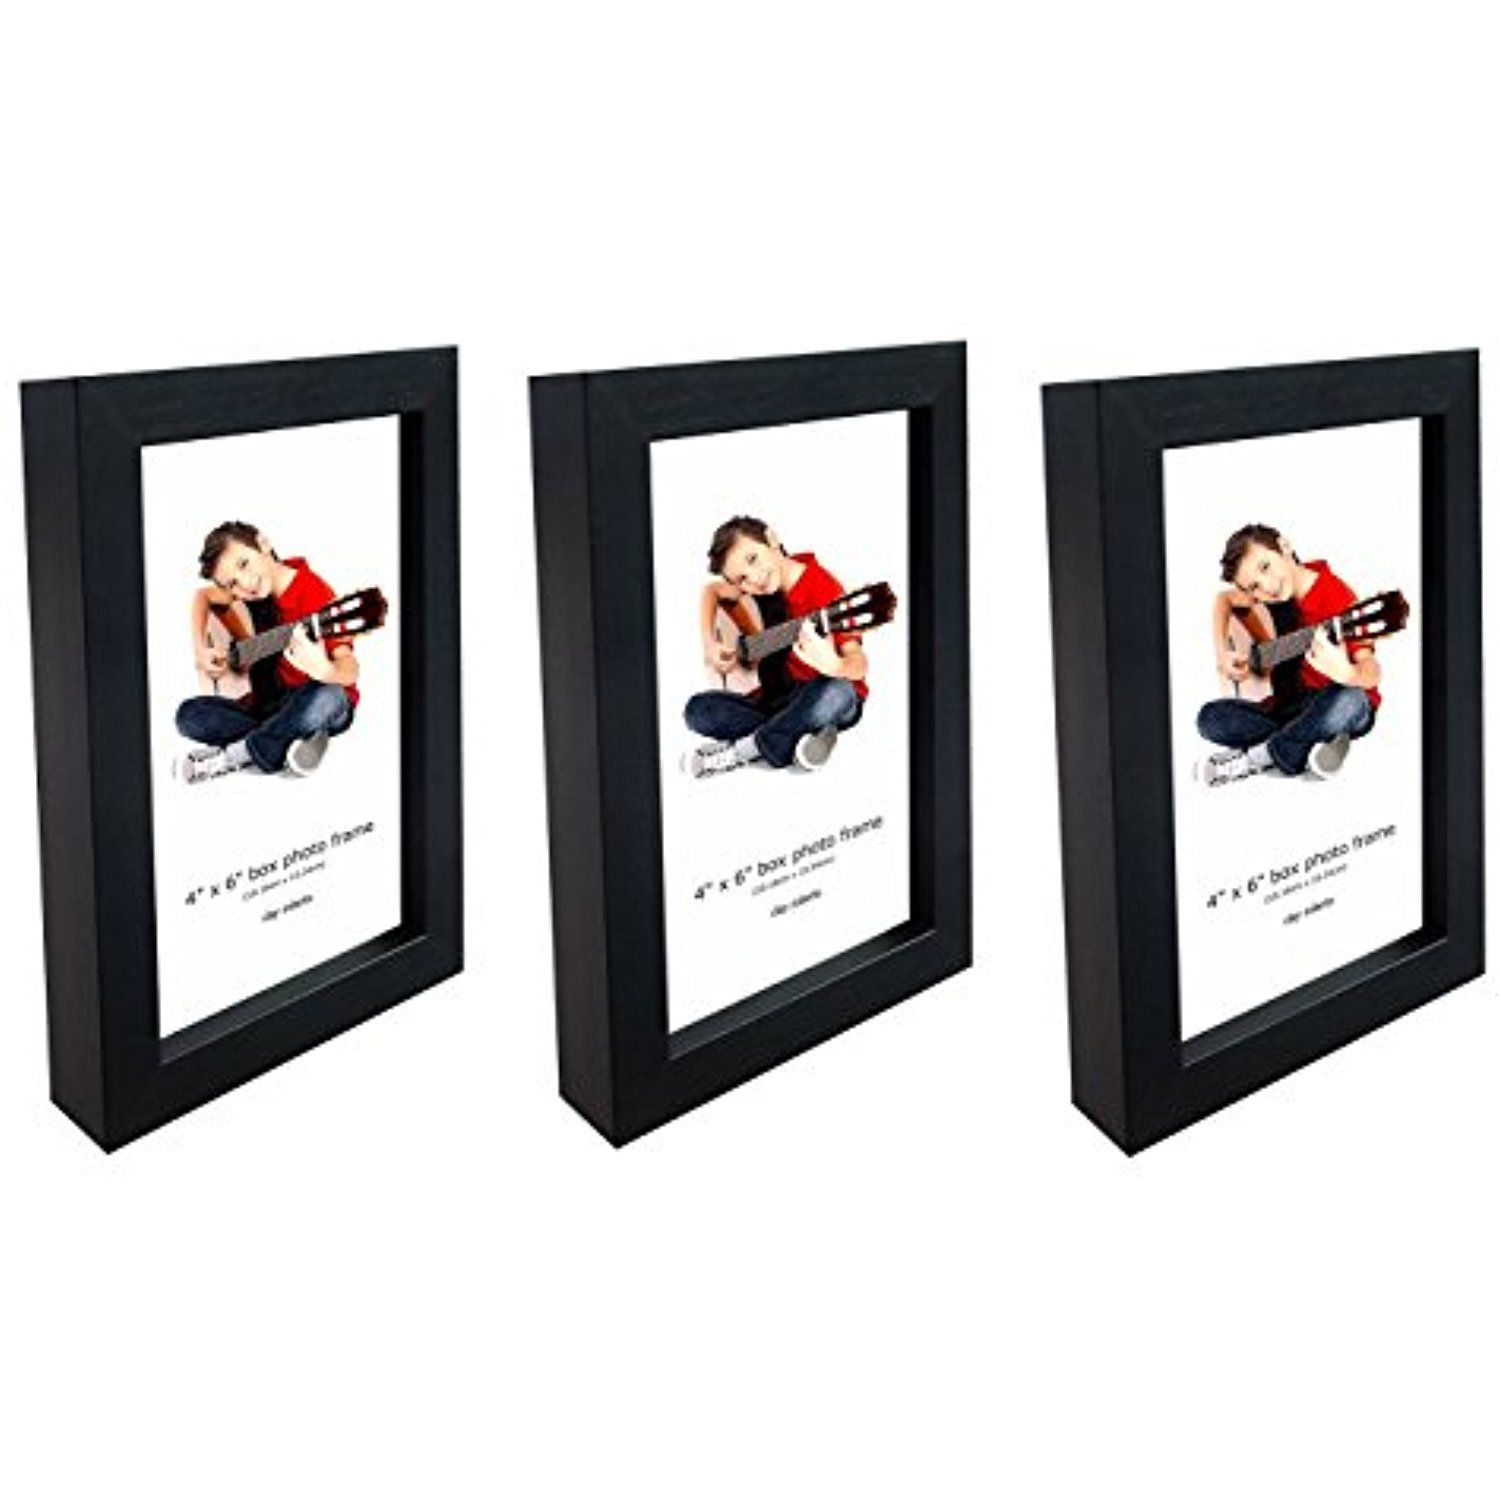 Photo Frames, 4 x 6 Inches, Pack of 3, Standard Photograph Size ...